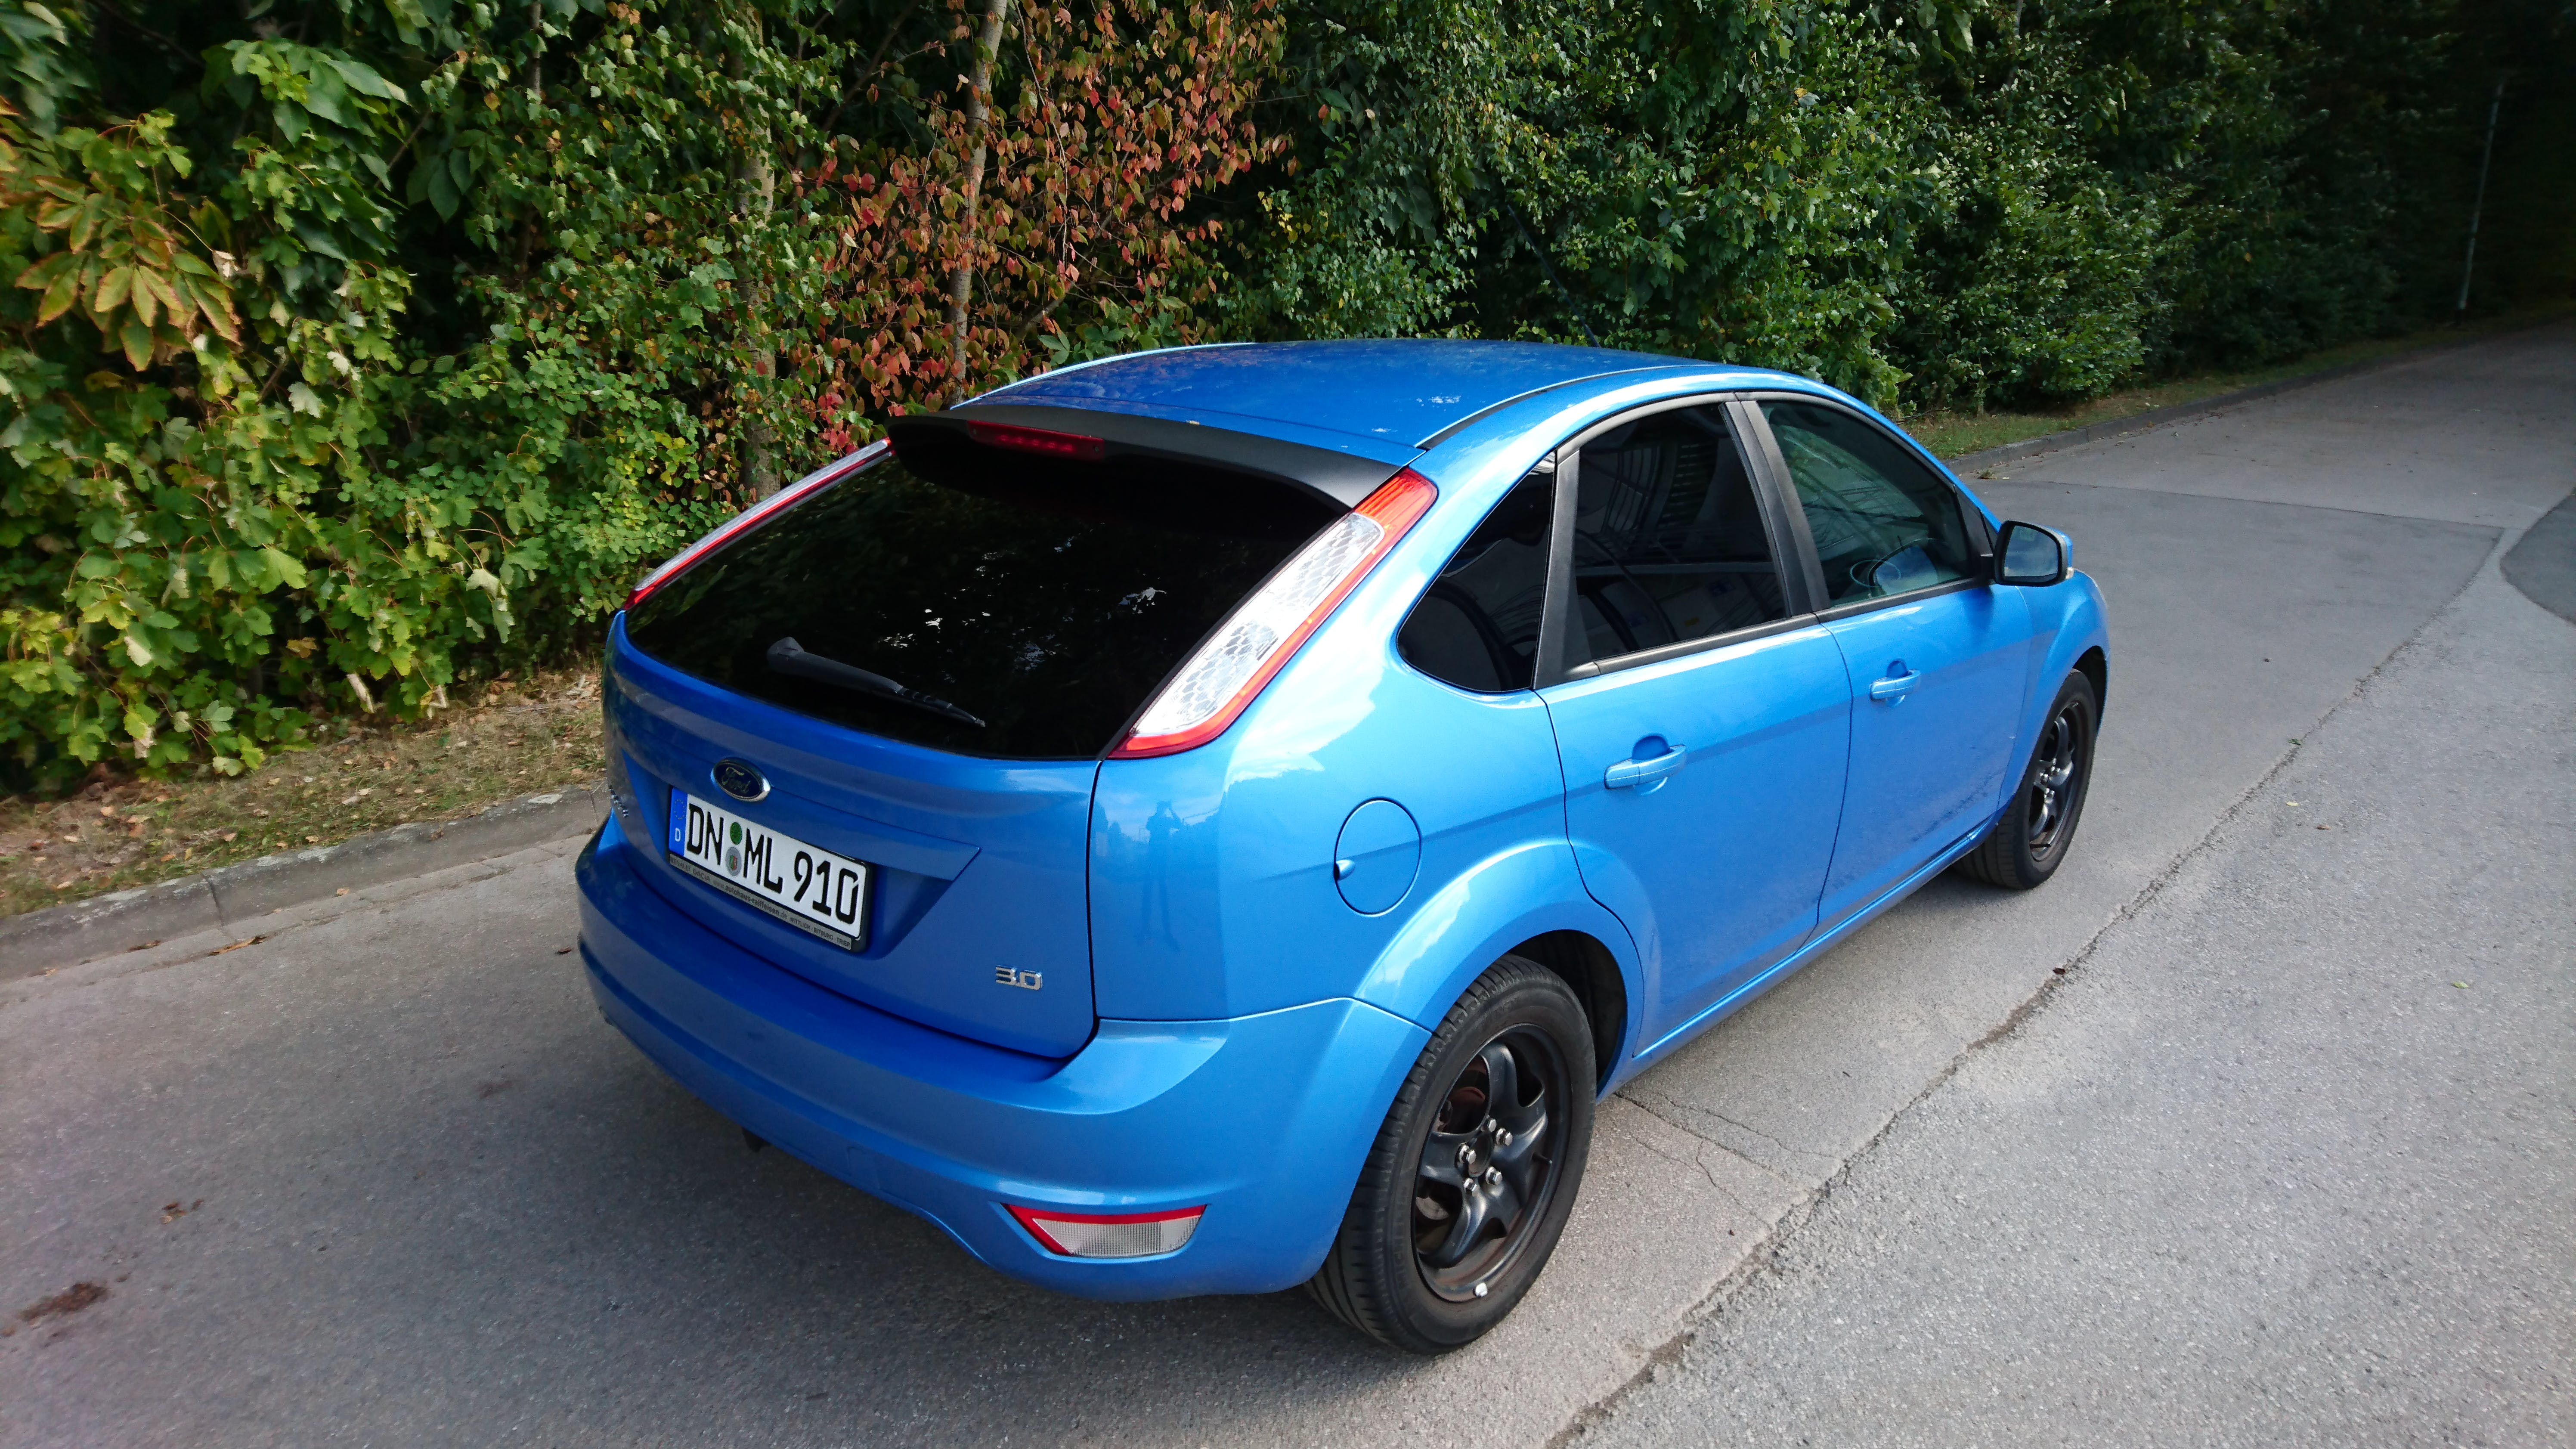 Ford Focus II (Facelift) mit CD-Player